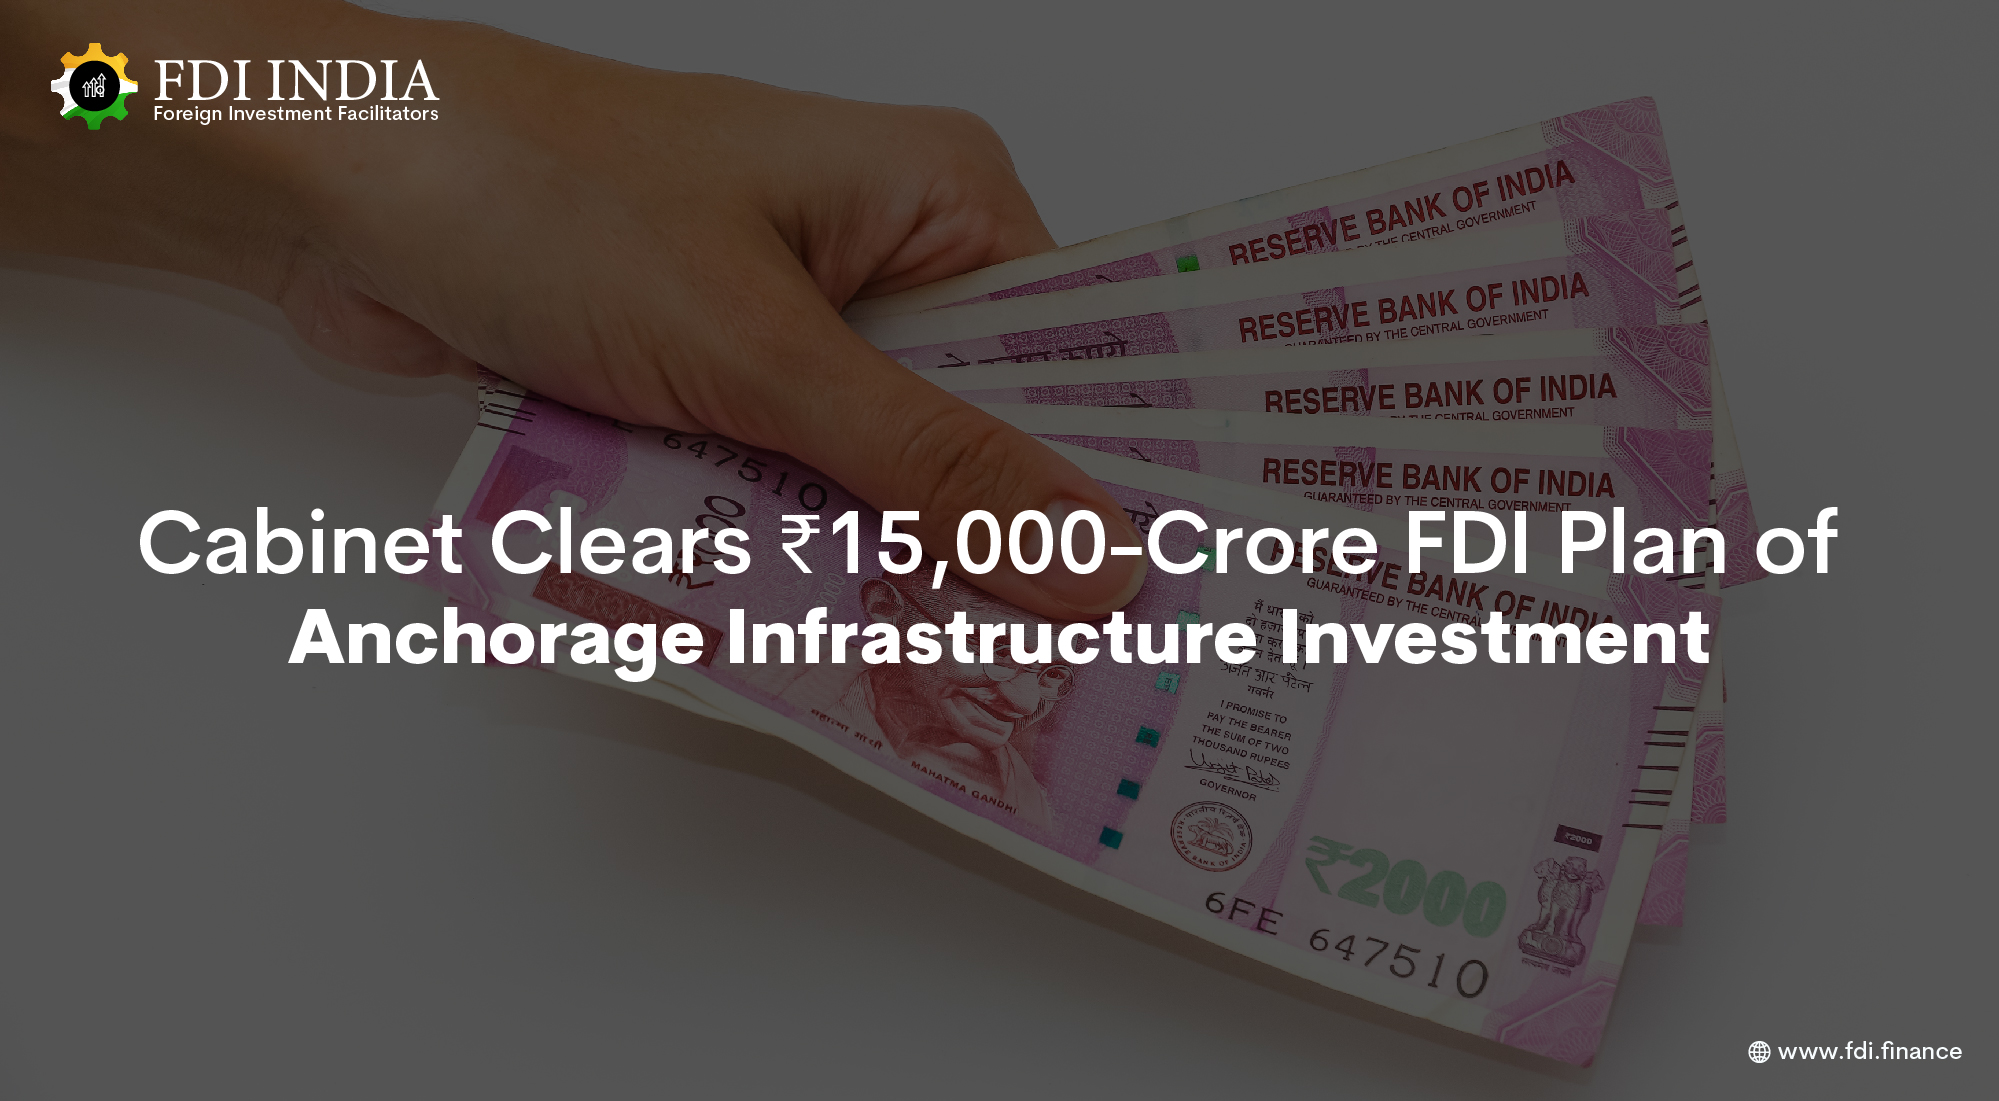 Cabinet Clears INR 15,000-Crore FDI Plan of Anchorage Infrastructure Investment